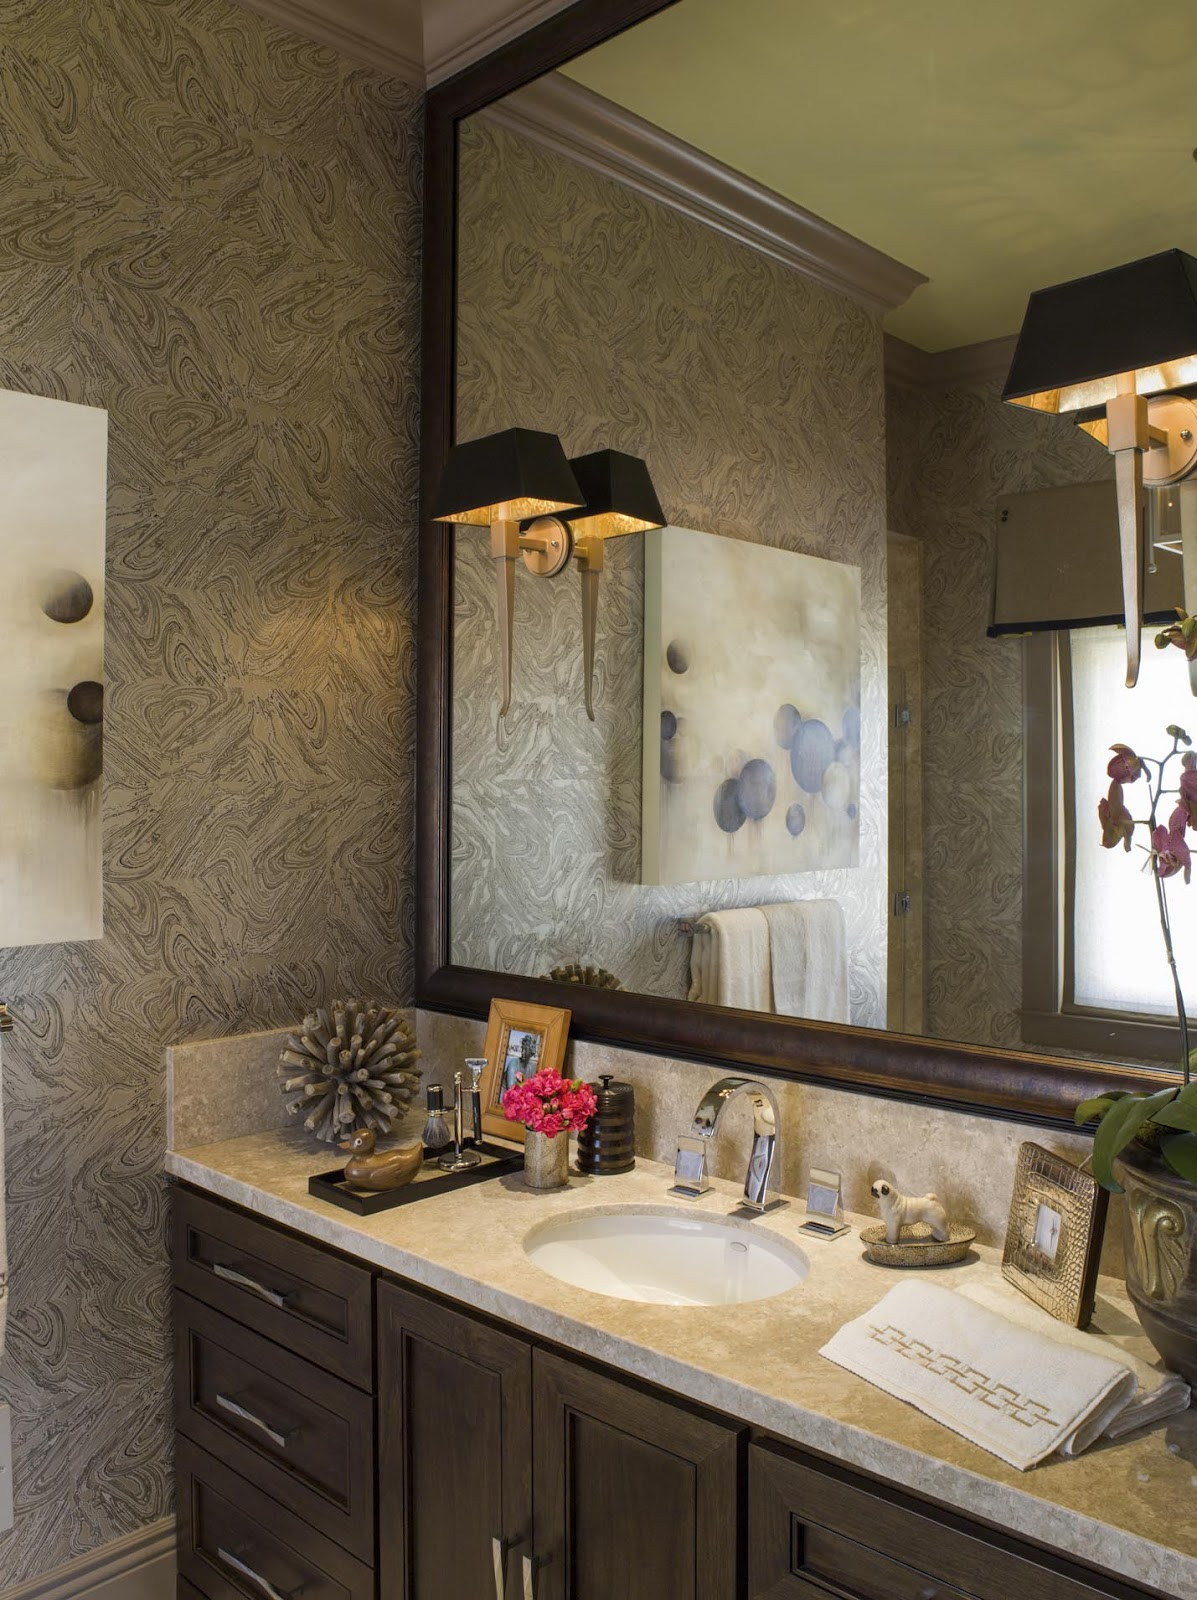 Bathroom wallpaper ideas bathroom wallpaper designs for Designer bathroom decor